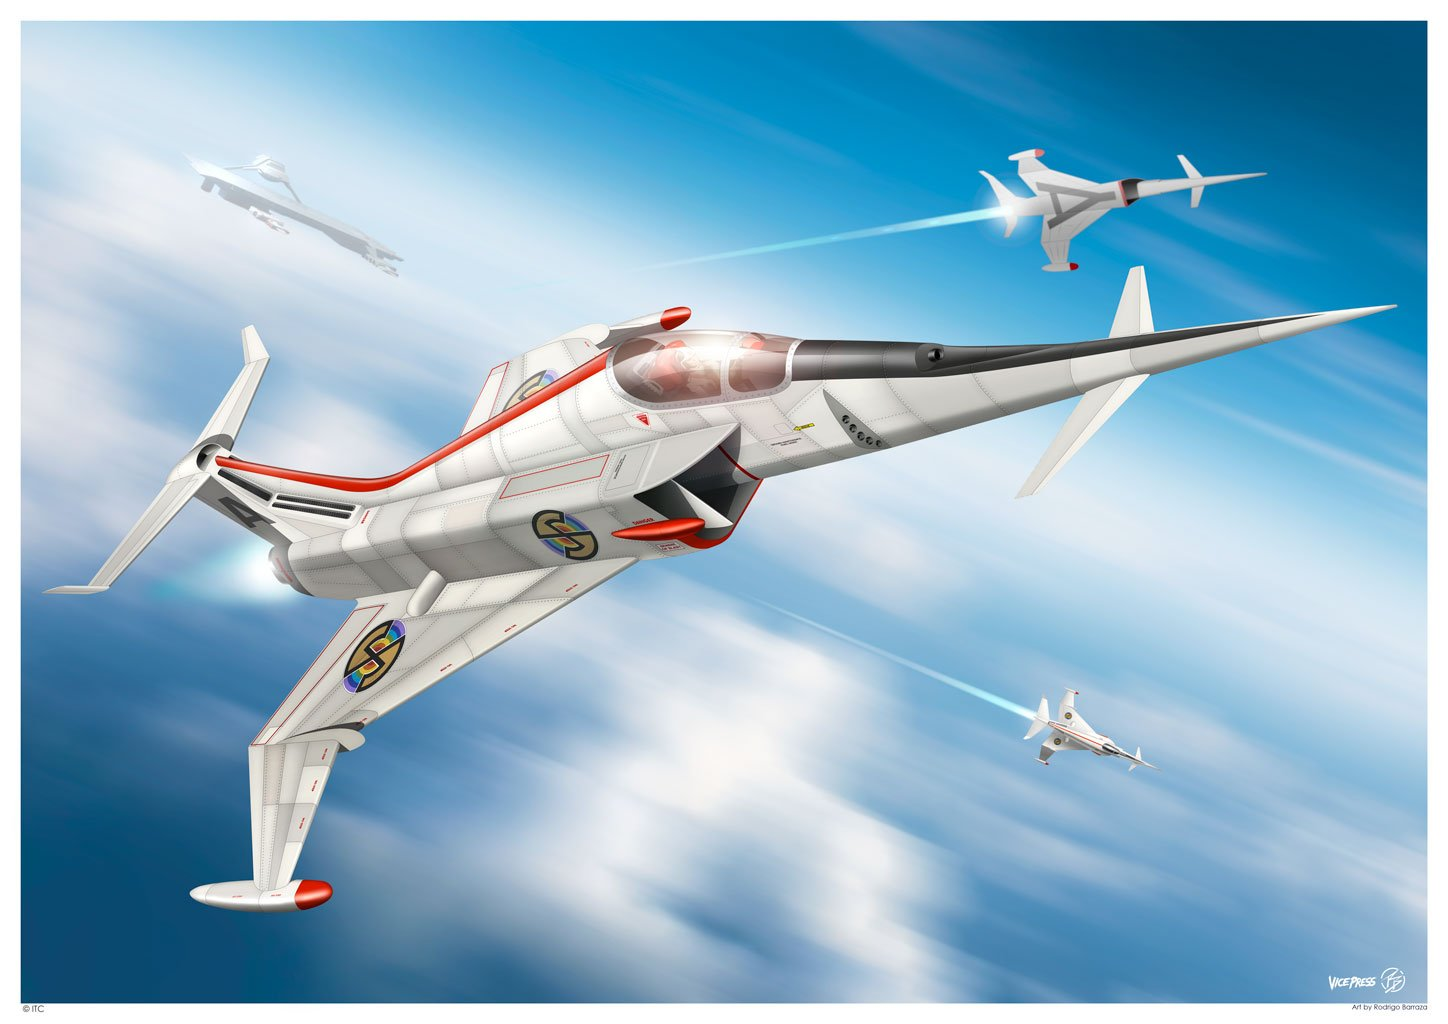 Angel Interceptor In Flight Print by Rodrigo Barrazza - The Gerry Anderson Store